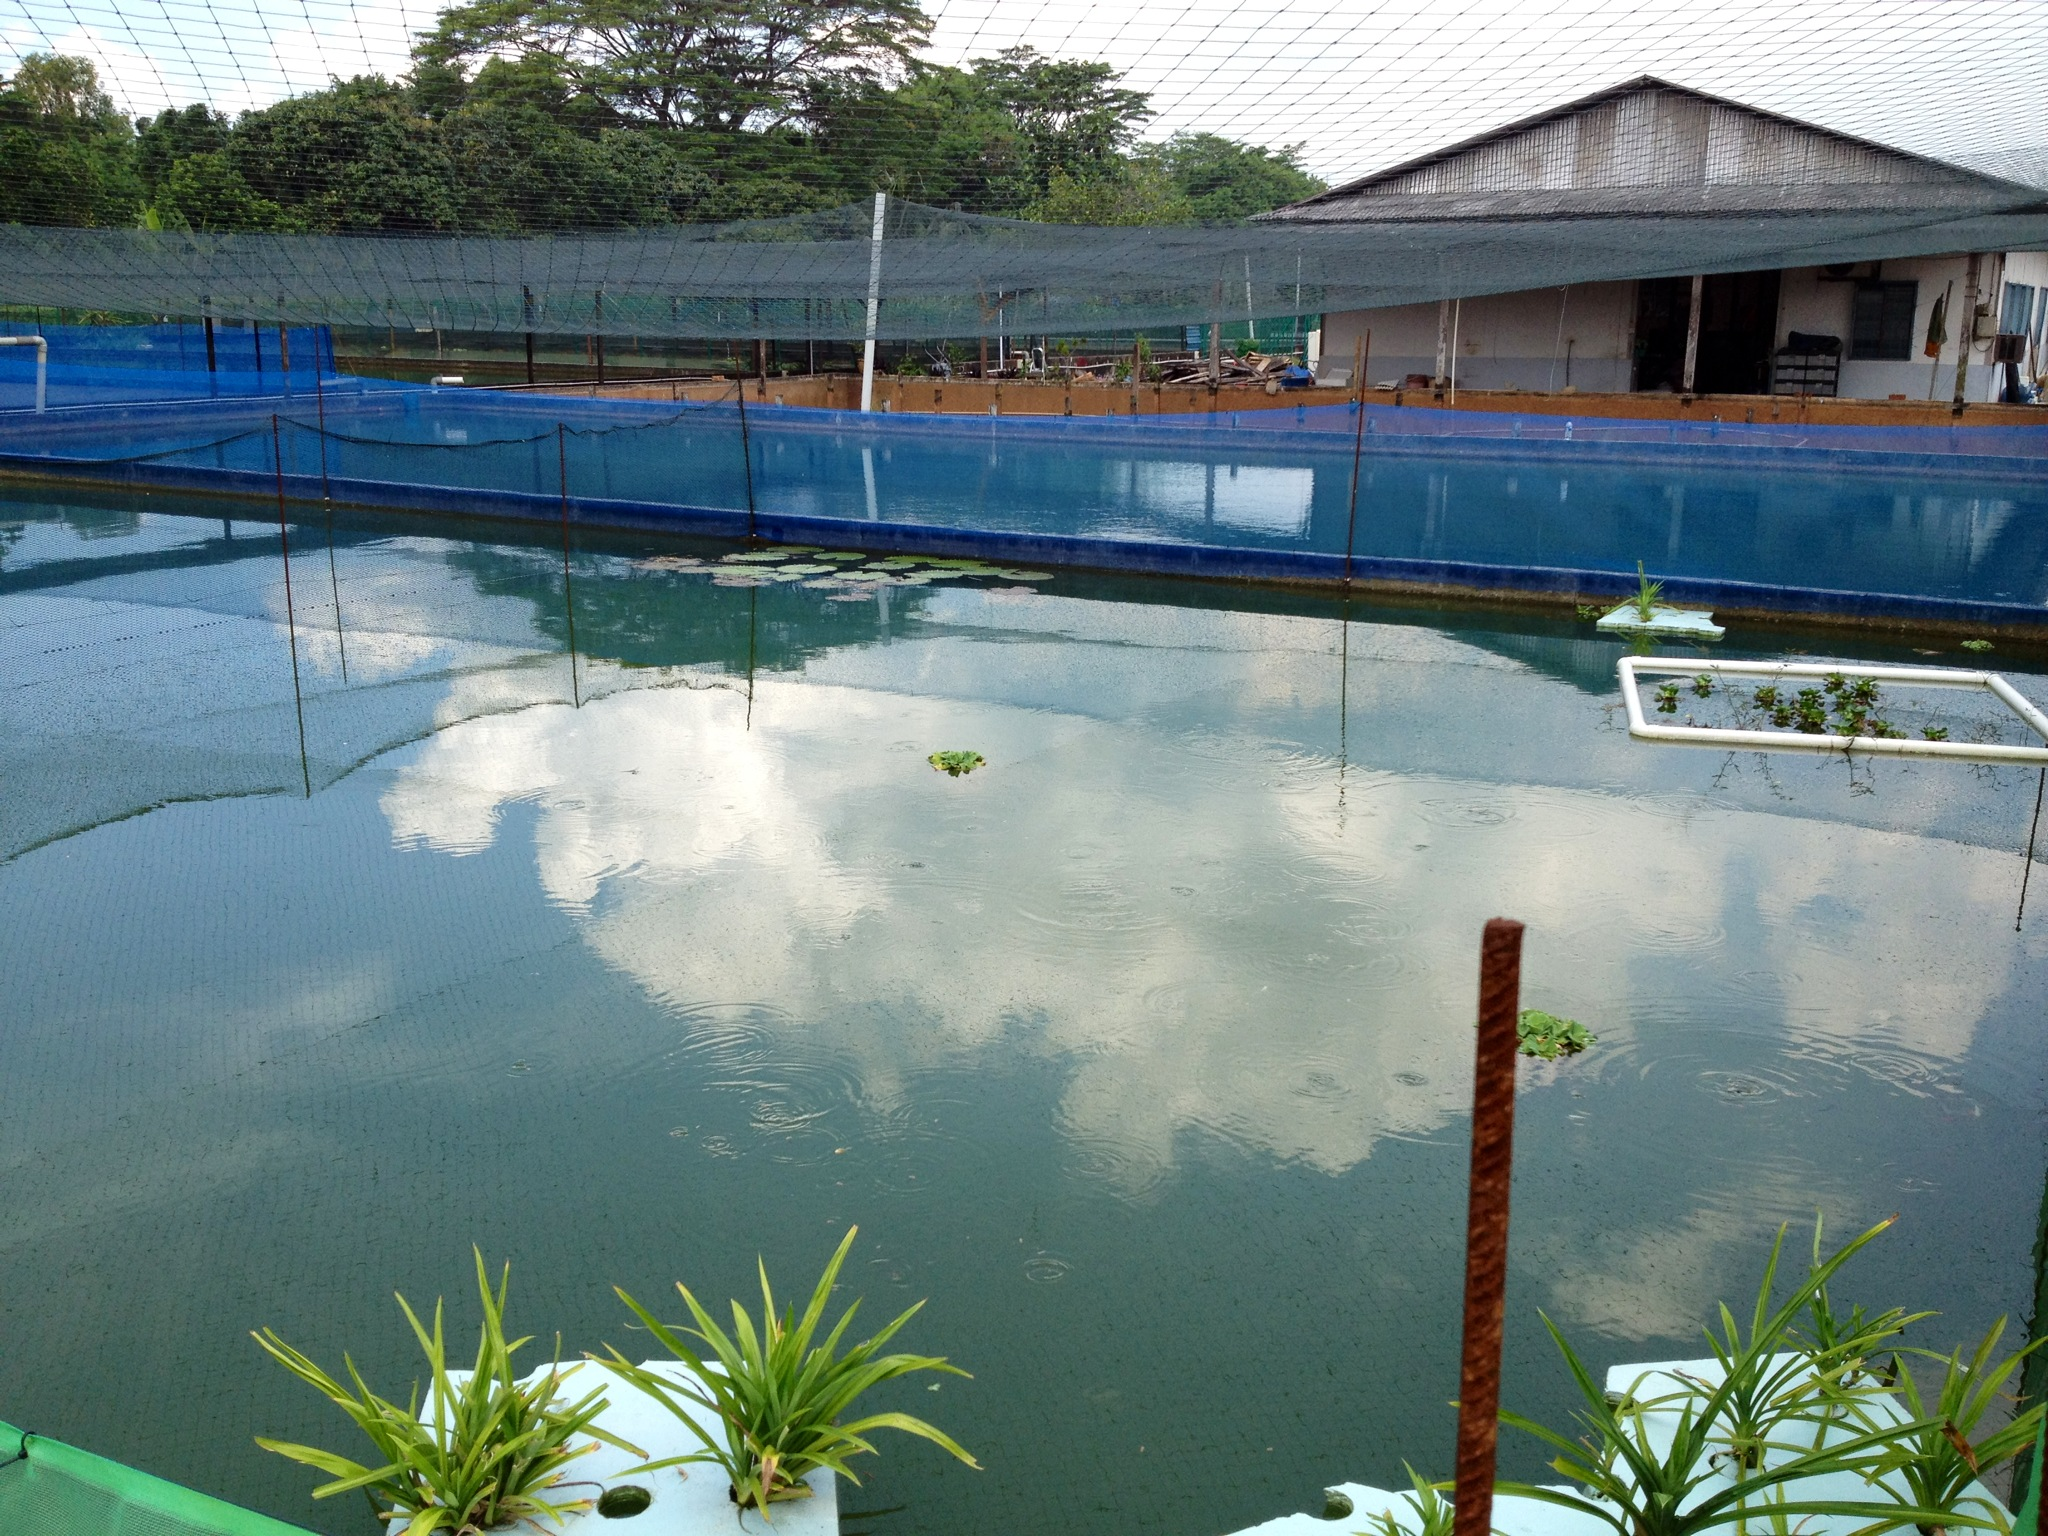 Marugen koi farm a boutique japanese koi fish farm for Koi carp farm